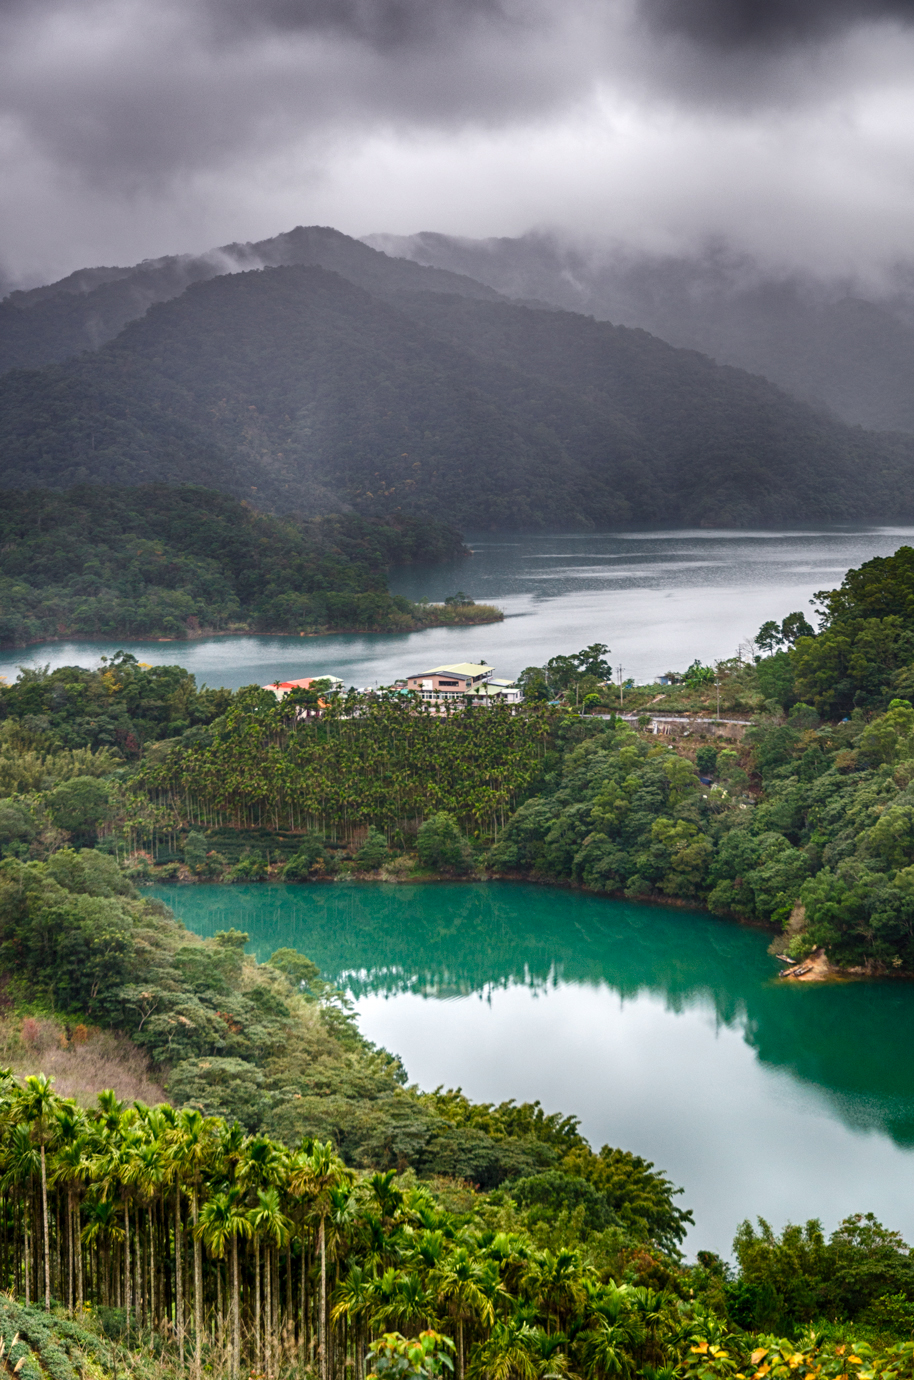 The emerald lakes of Shiding amidst the Tea Plantations